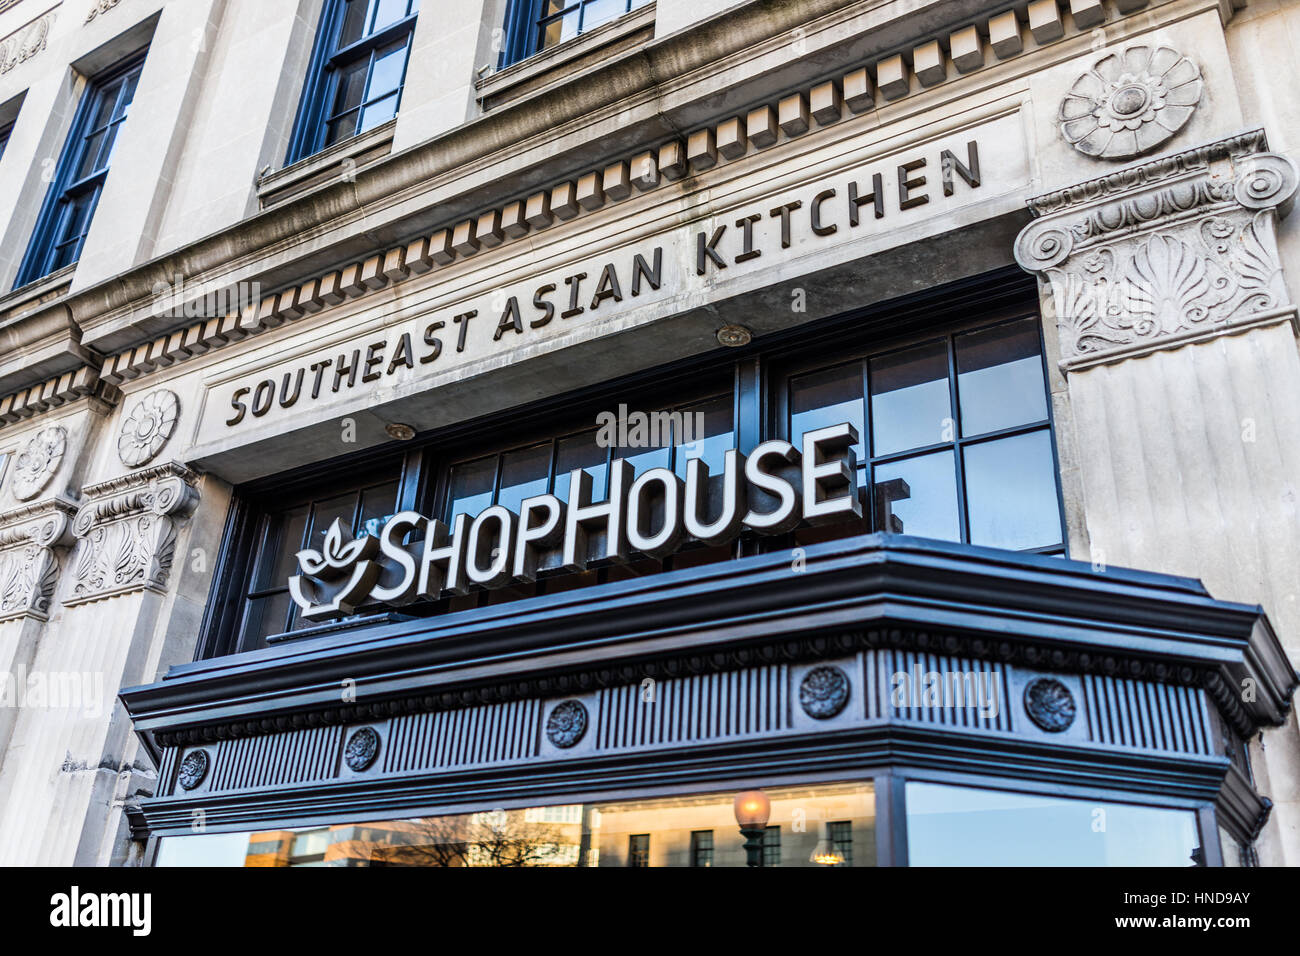 Washington DC, USA - February 5, 2017: Shophouse fast food restaurant on Dupont Circle, owned by Chipotle - Stock Image